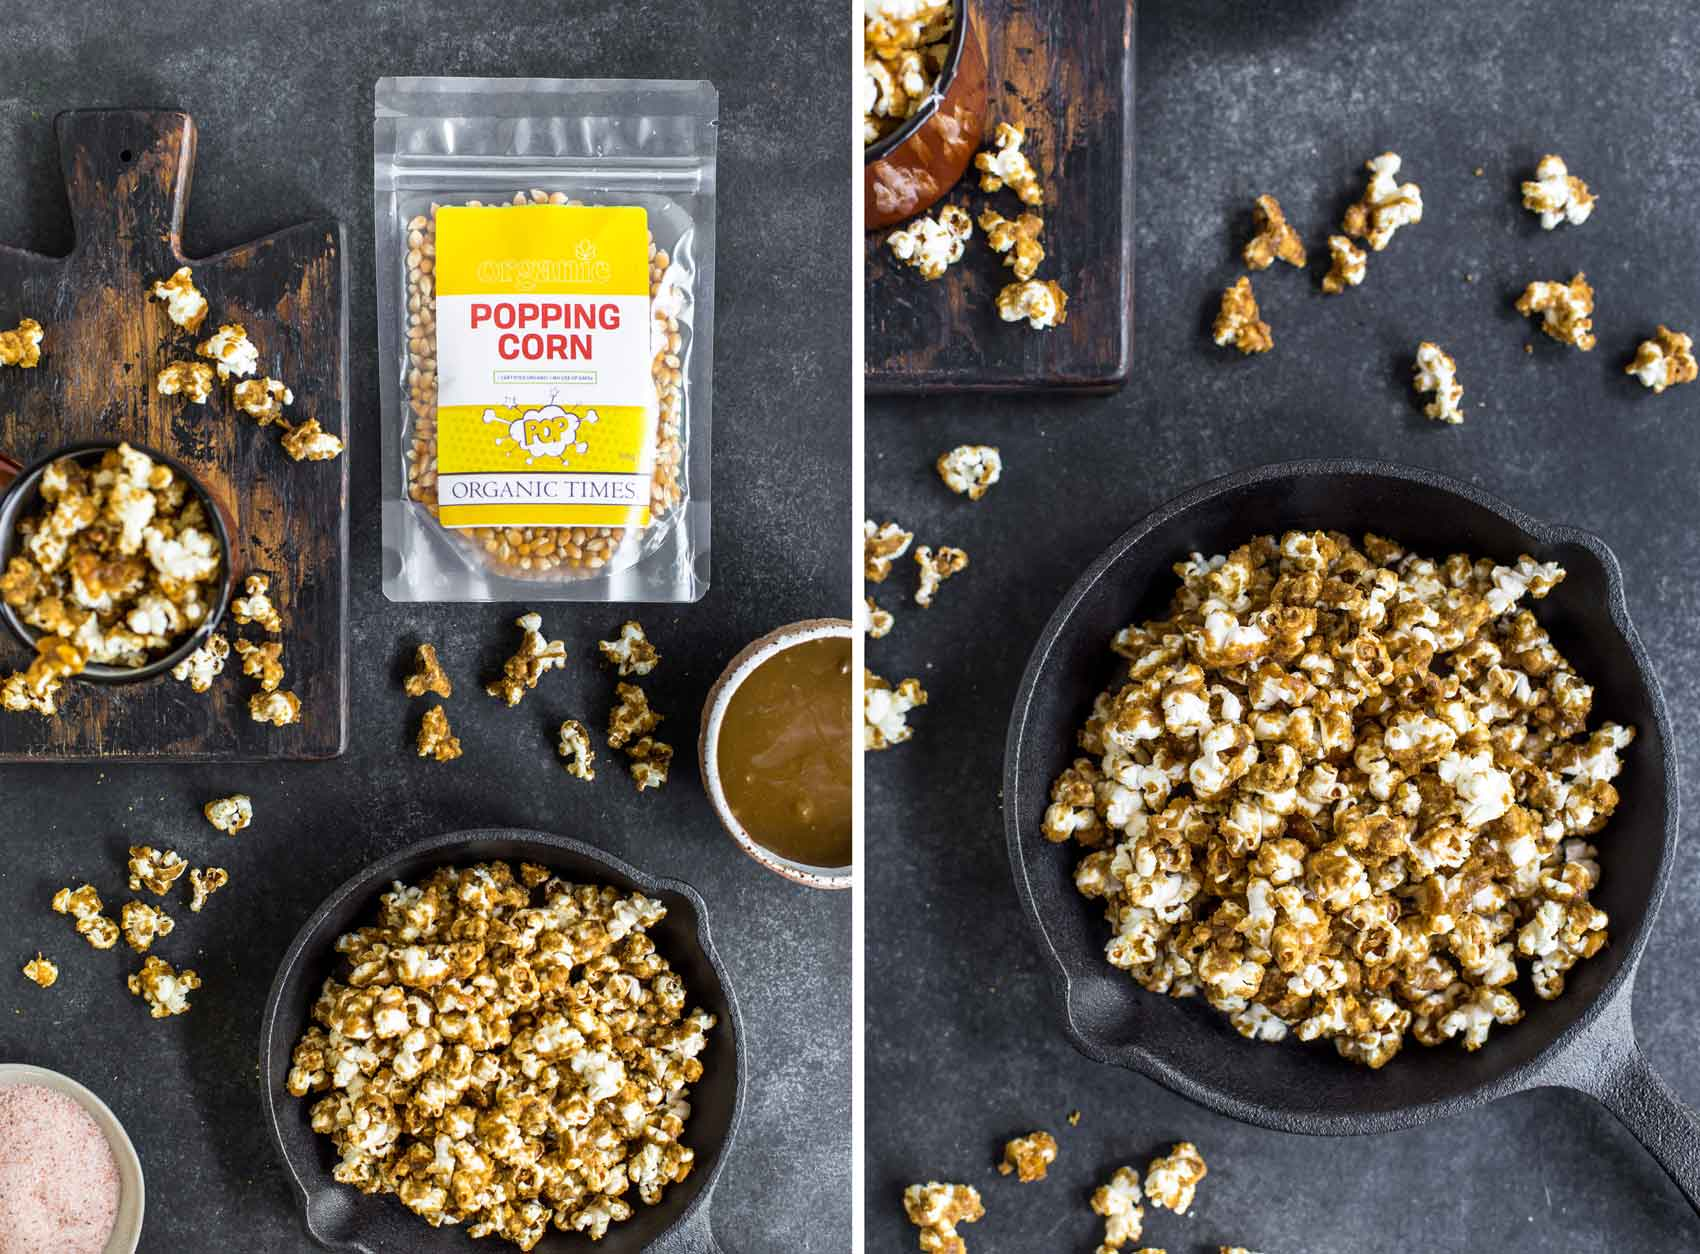 A packet of Organic Times popping corn next to a bowl of caramel sauce and a pan of caramel popcorn